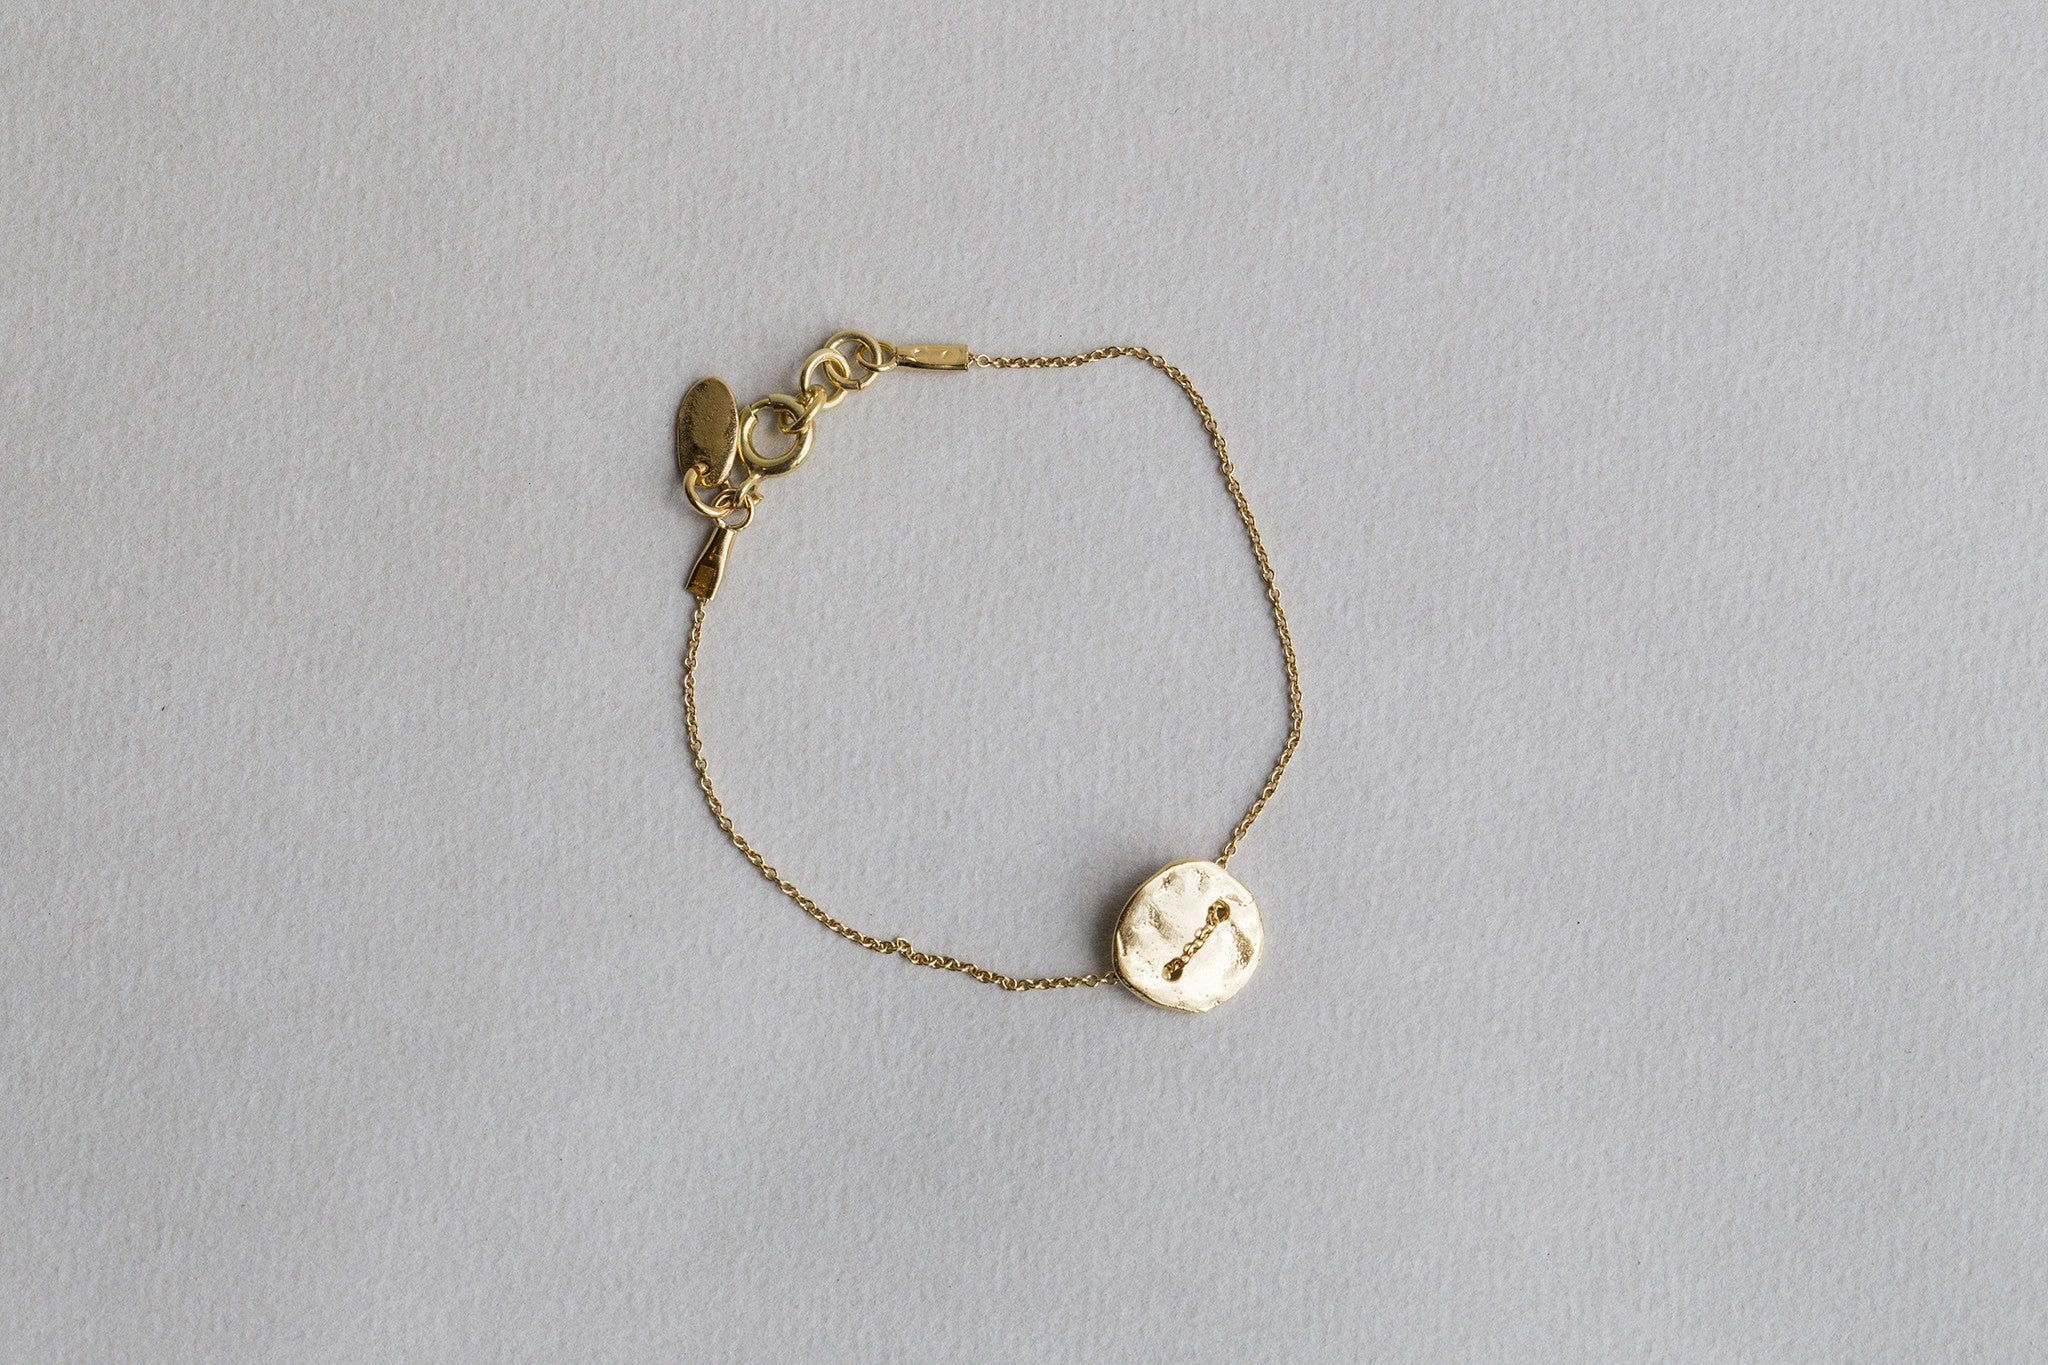 incredibly original yet simple hammered disc bracelet